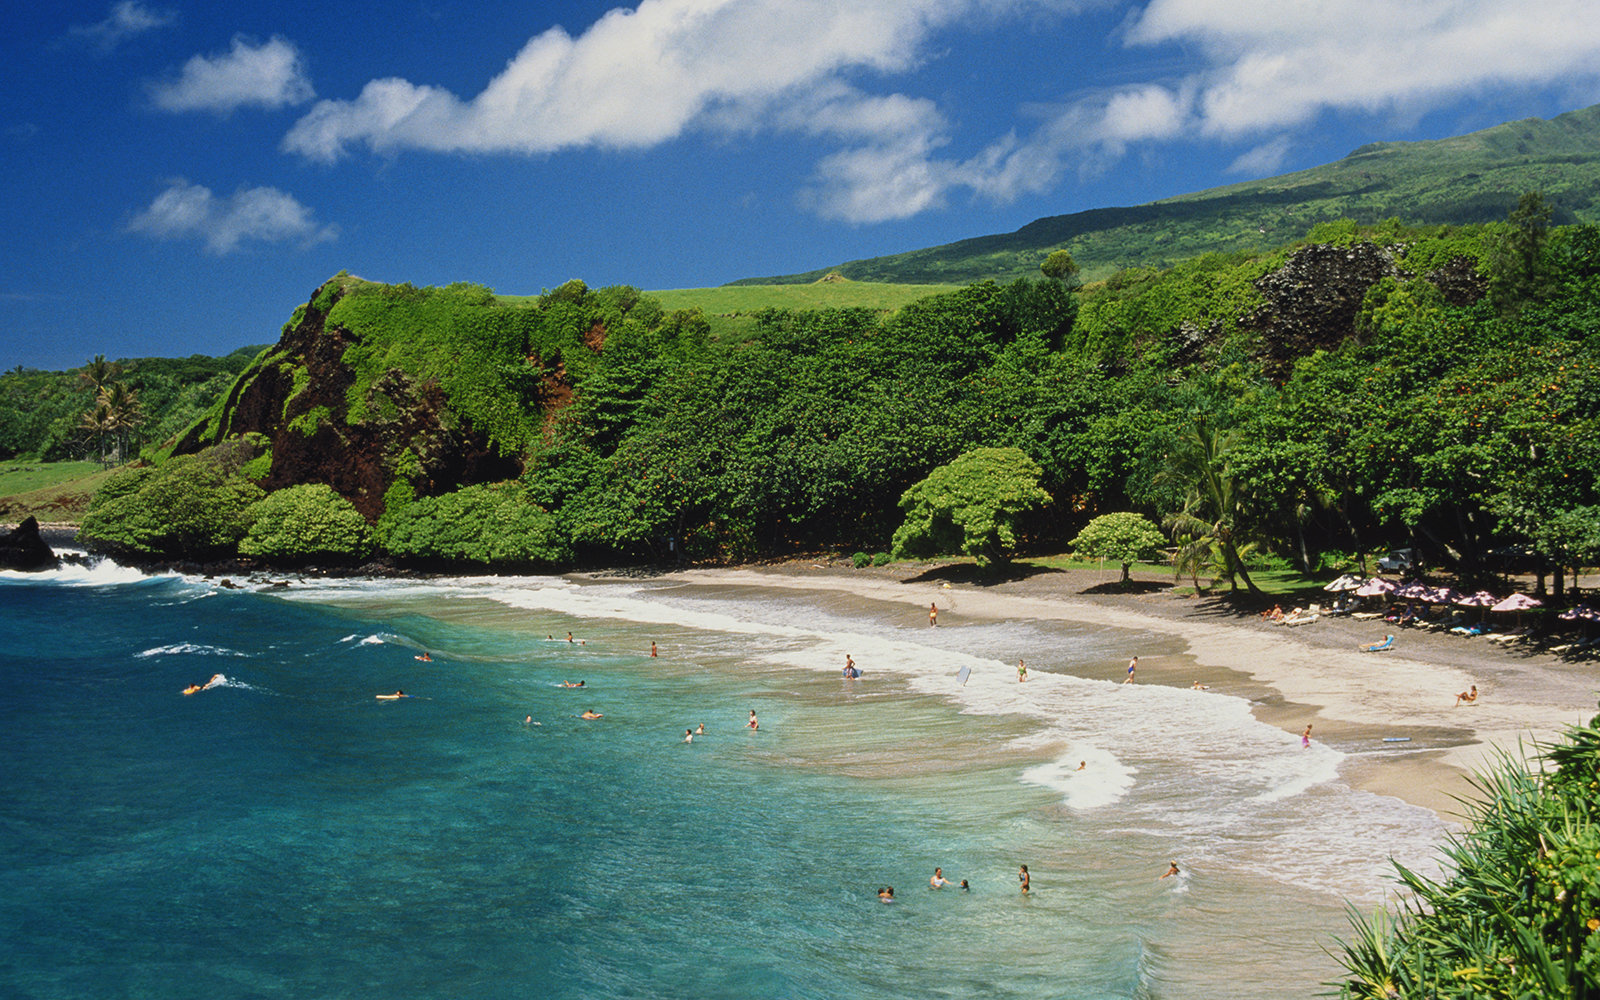 USA, Hawaii, Maui, Hamoa Beach